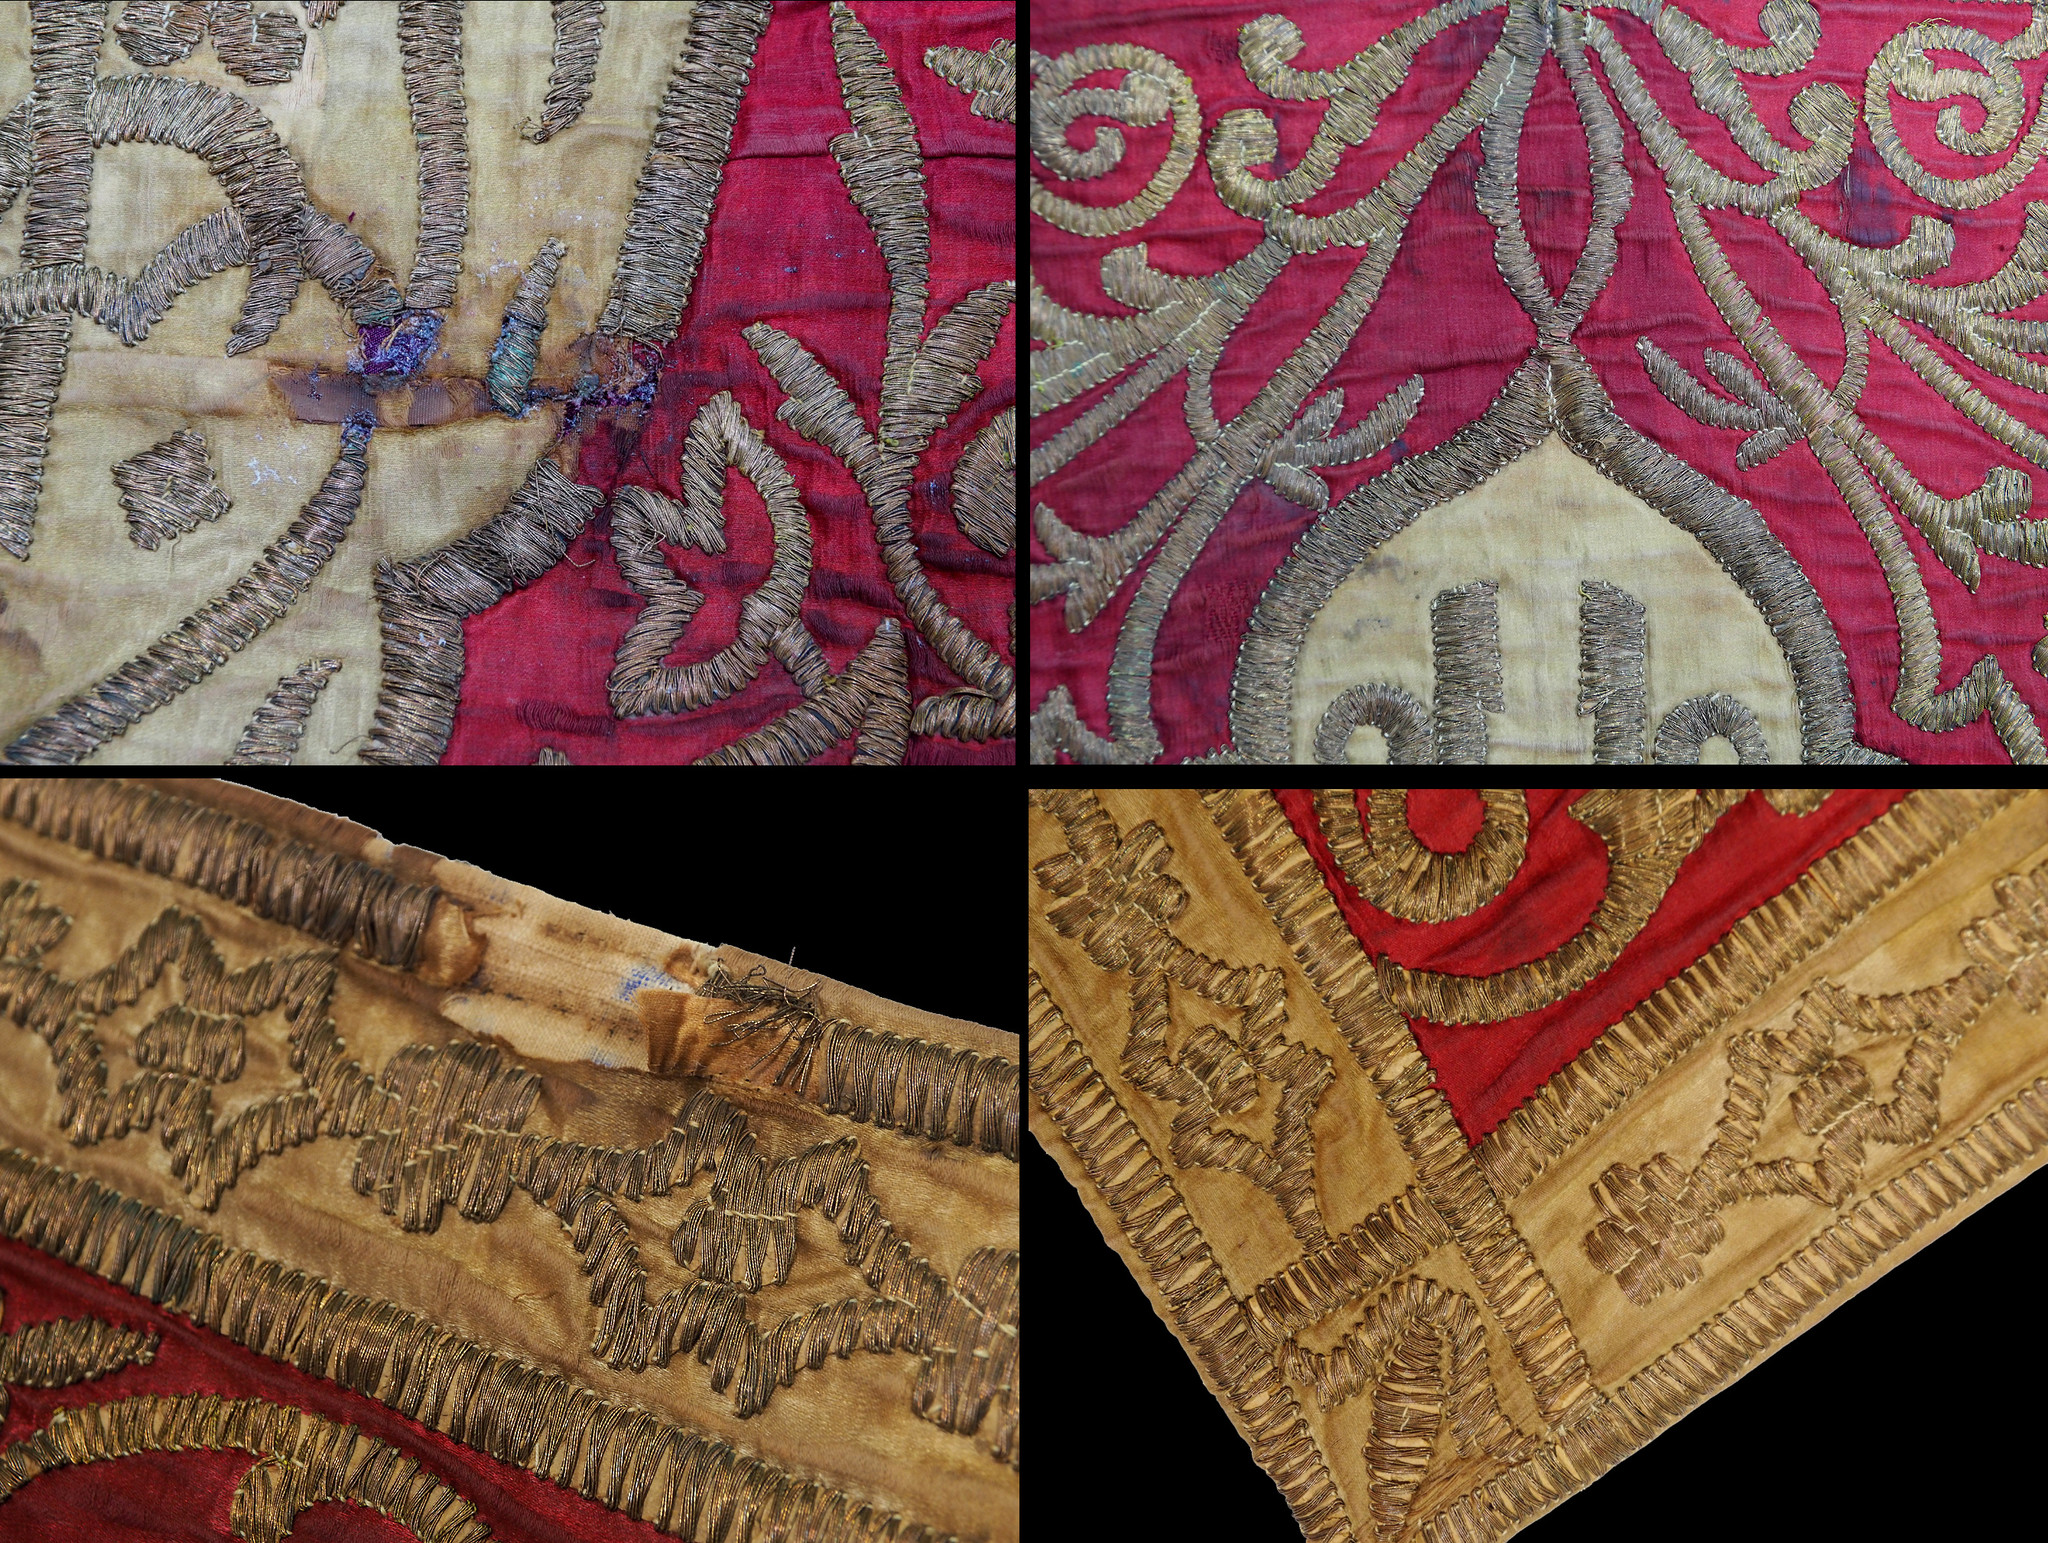 Antique islamic Ottoman Dynasty Turkish hand embroidered textile panel Tapestry 21/A